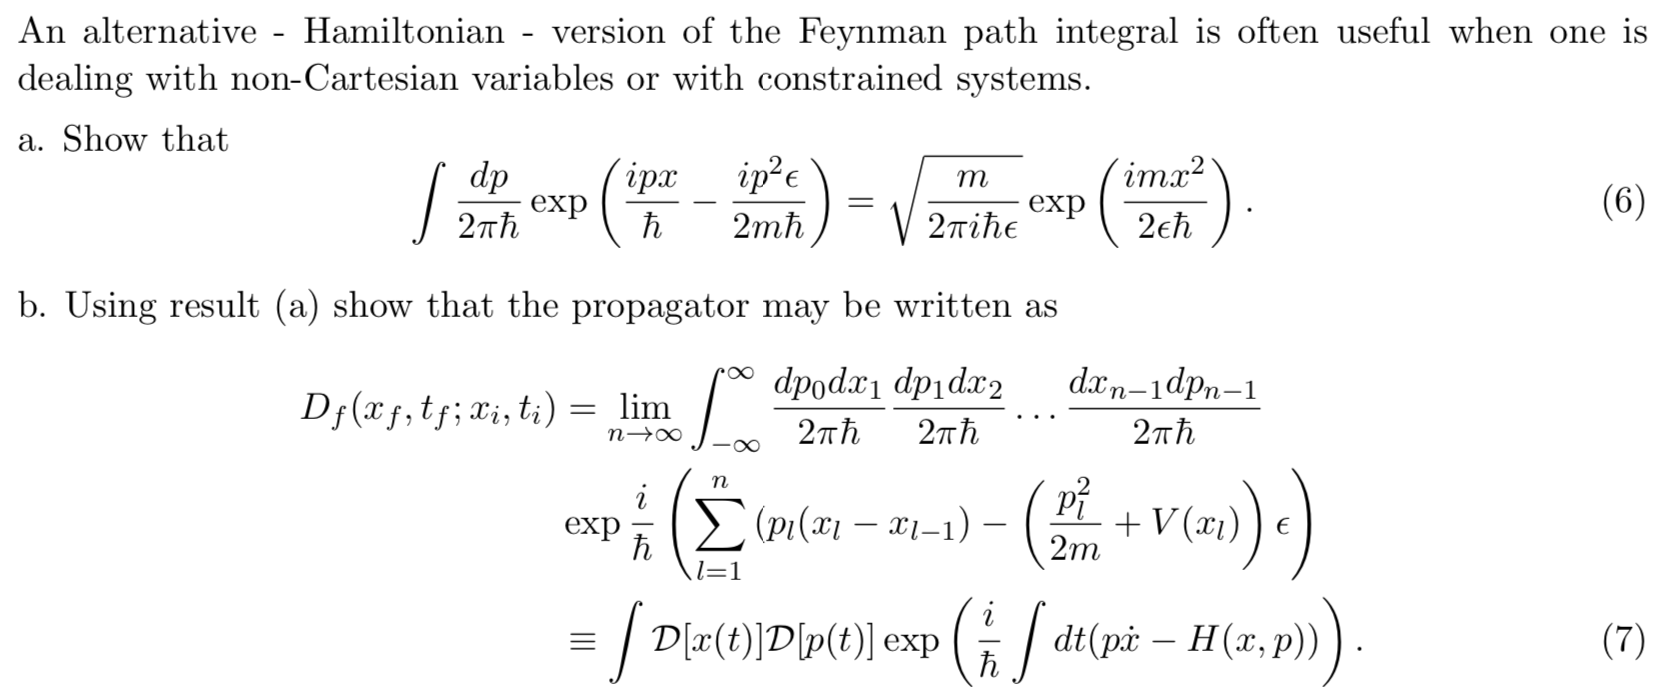 An alternative - Hamiltonian version of the Feynman path integral is often useful when one is dealing with non-Cartesian variables or with constrained systems a. Show that imx2 dp exp 2пh iрх S m (6) exp 27Tihe 2eh 2mh b. Using result (a) show that the propagator may be written as dx n-1dpn-1 dpod dpidax2 Dj (xf,t;Xi, ti) = lim n o 27Th 2тћ 2πh (PI( - V(x)E 2m exp h l=1 dtpHa,p) ED(t)Dp(t)] exp (7) h